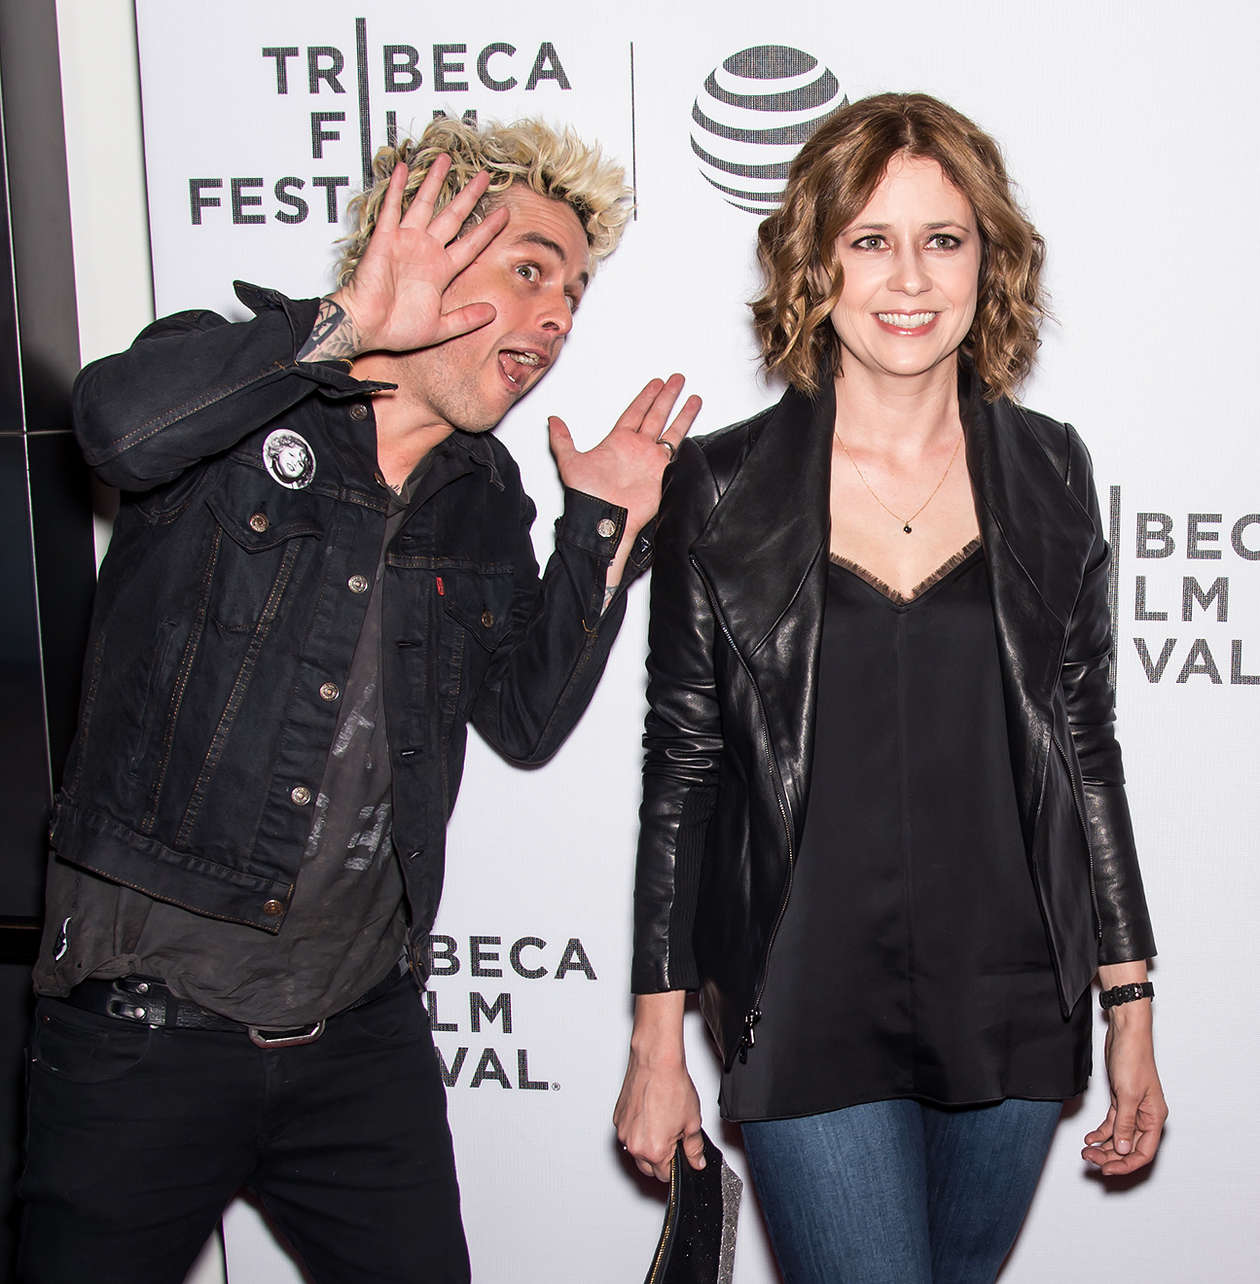 Jenna Fischer Geezer Premiere at Tribeca Film Festival in New York